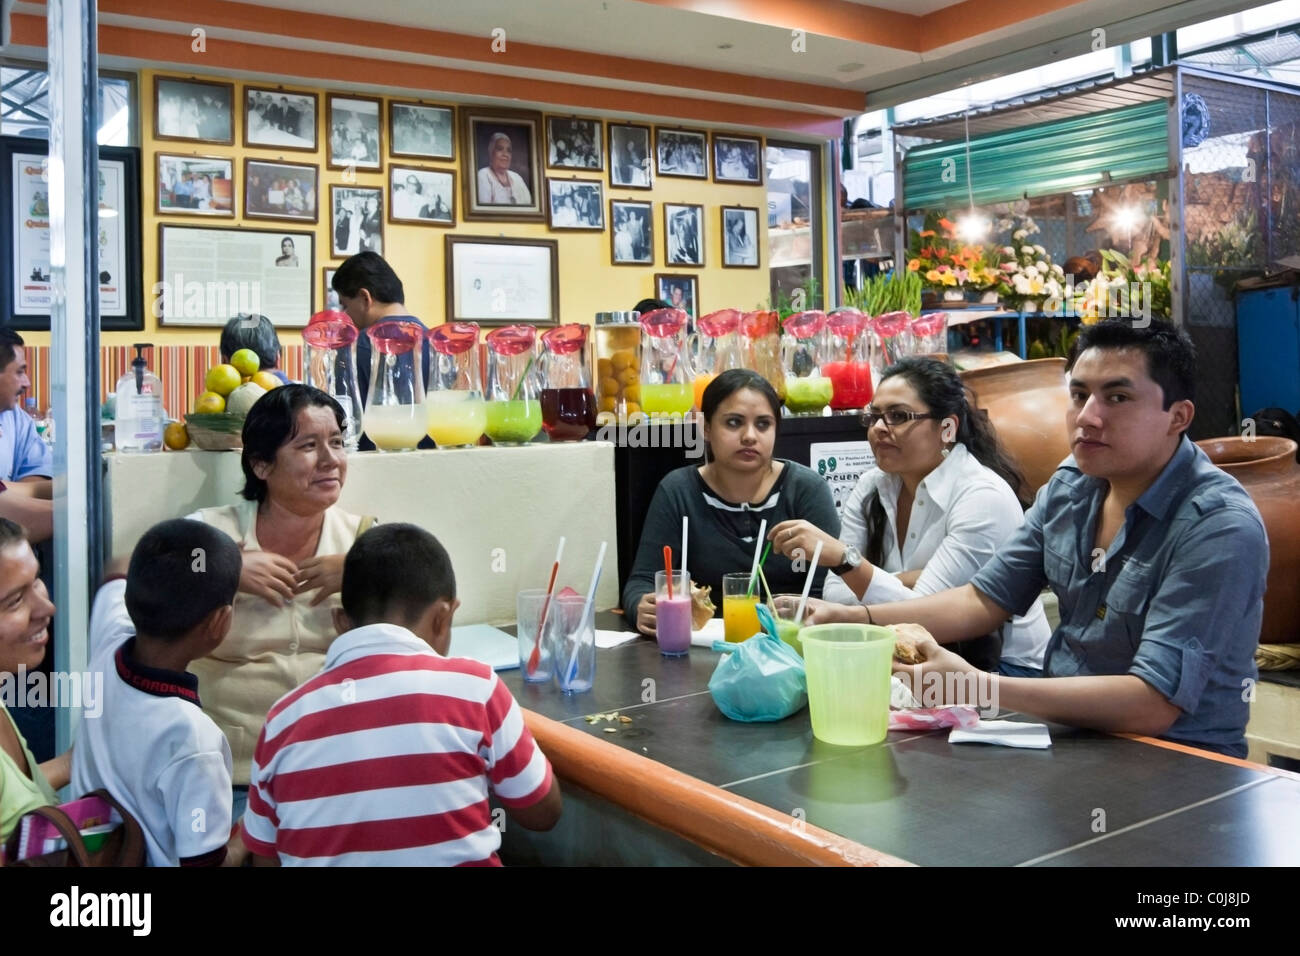 family group at a table in old restaurant inside Benito Juarez market Oaxaca City Mexico - Stock Image